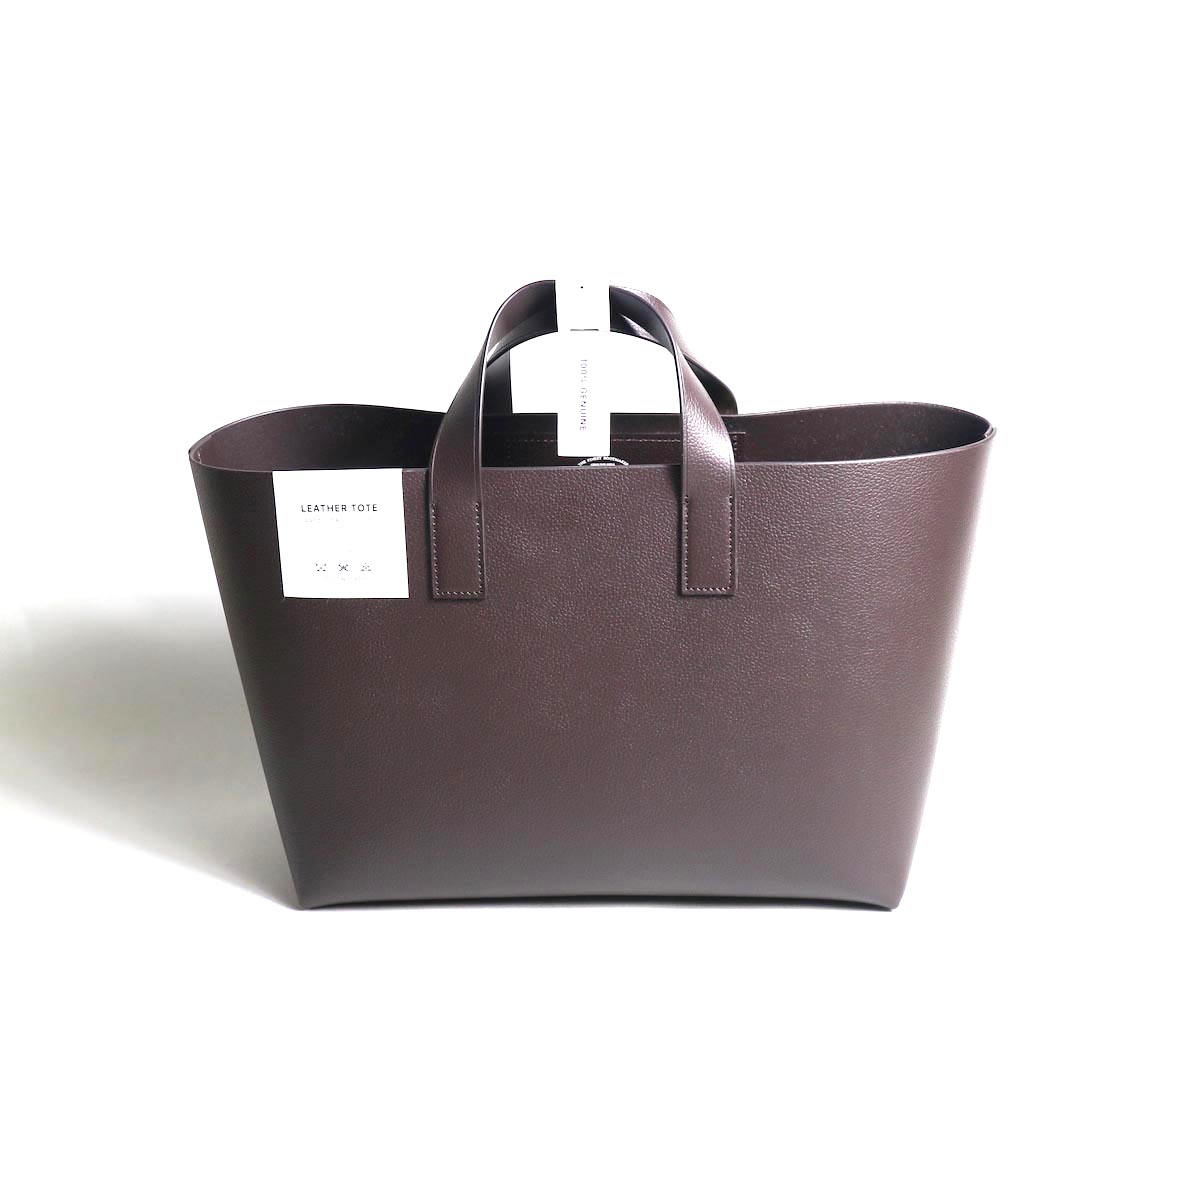 foot the coacher / Leather tote-S (DARK BROWN)